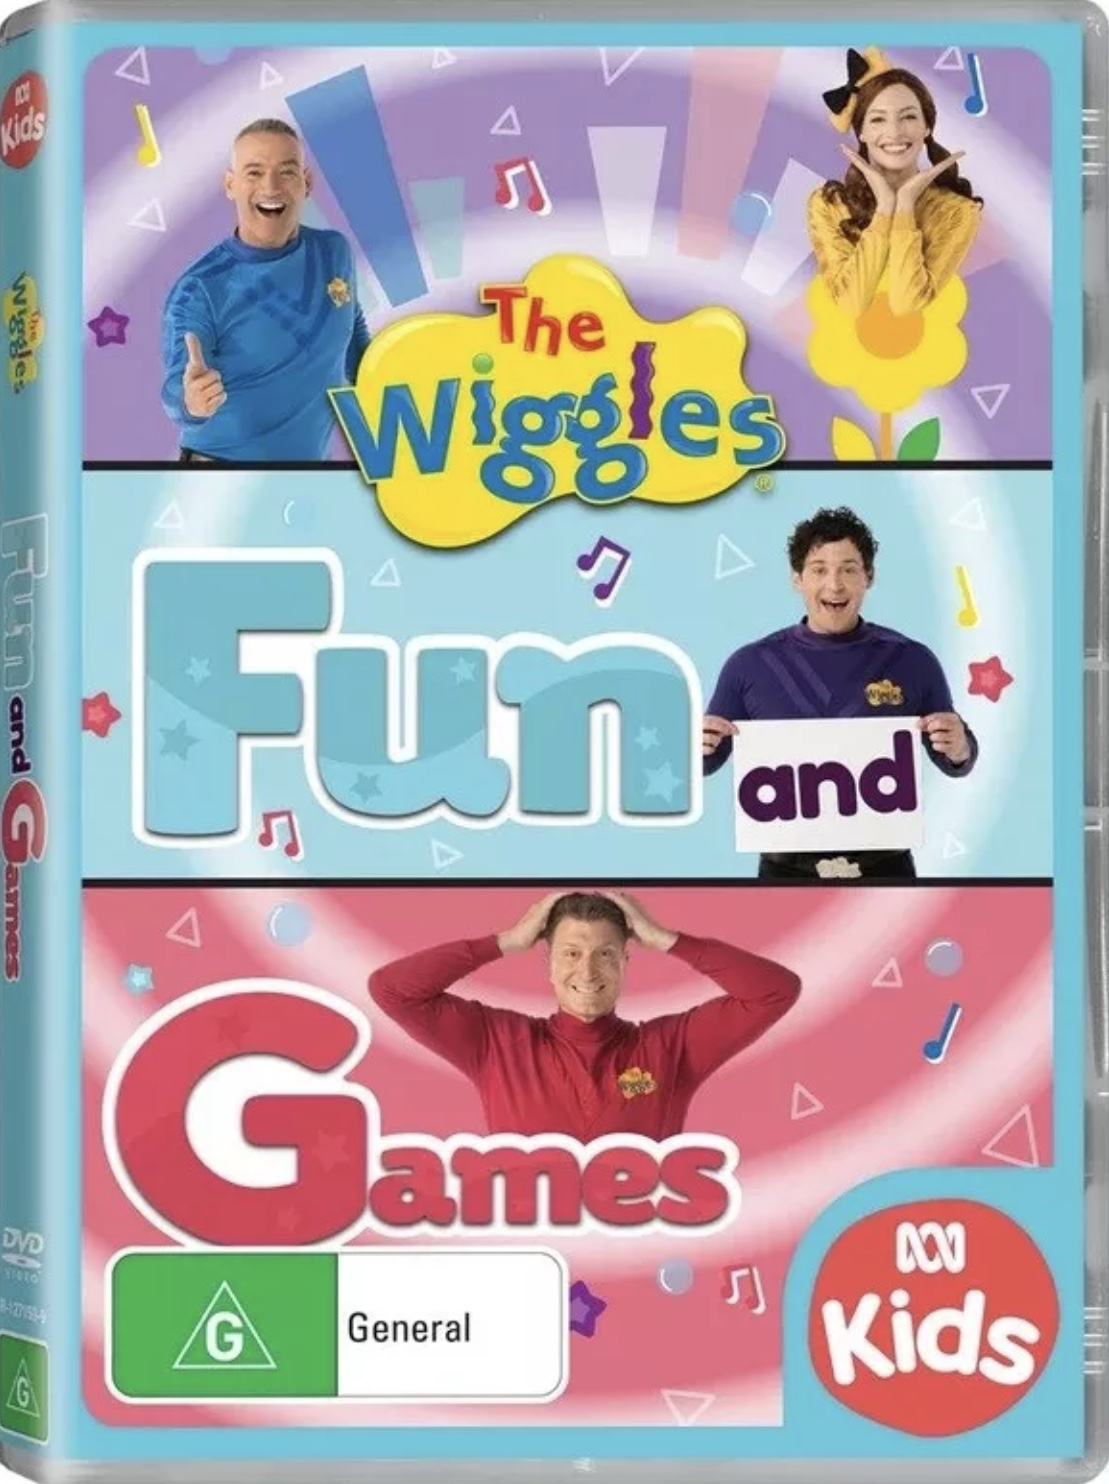 Fun and Games (The Wiggles video)